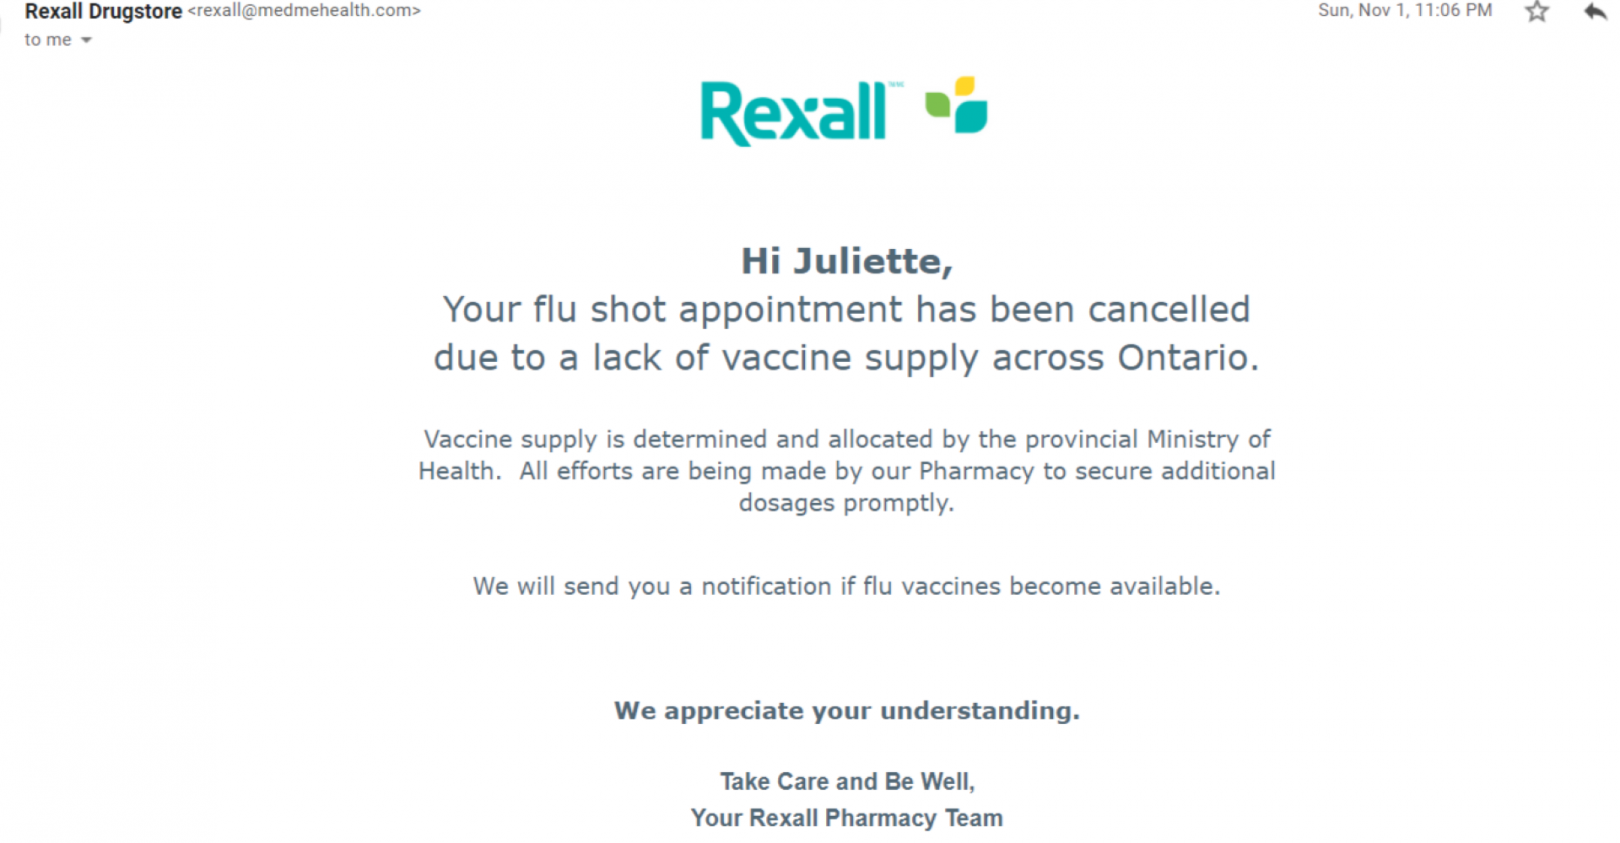 Flu shot cancellation email from Rexall, November 1, 2020